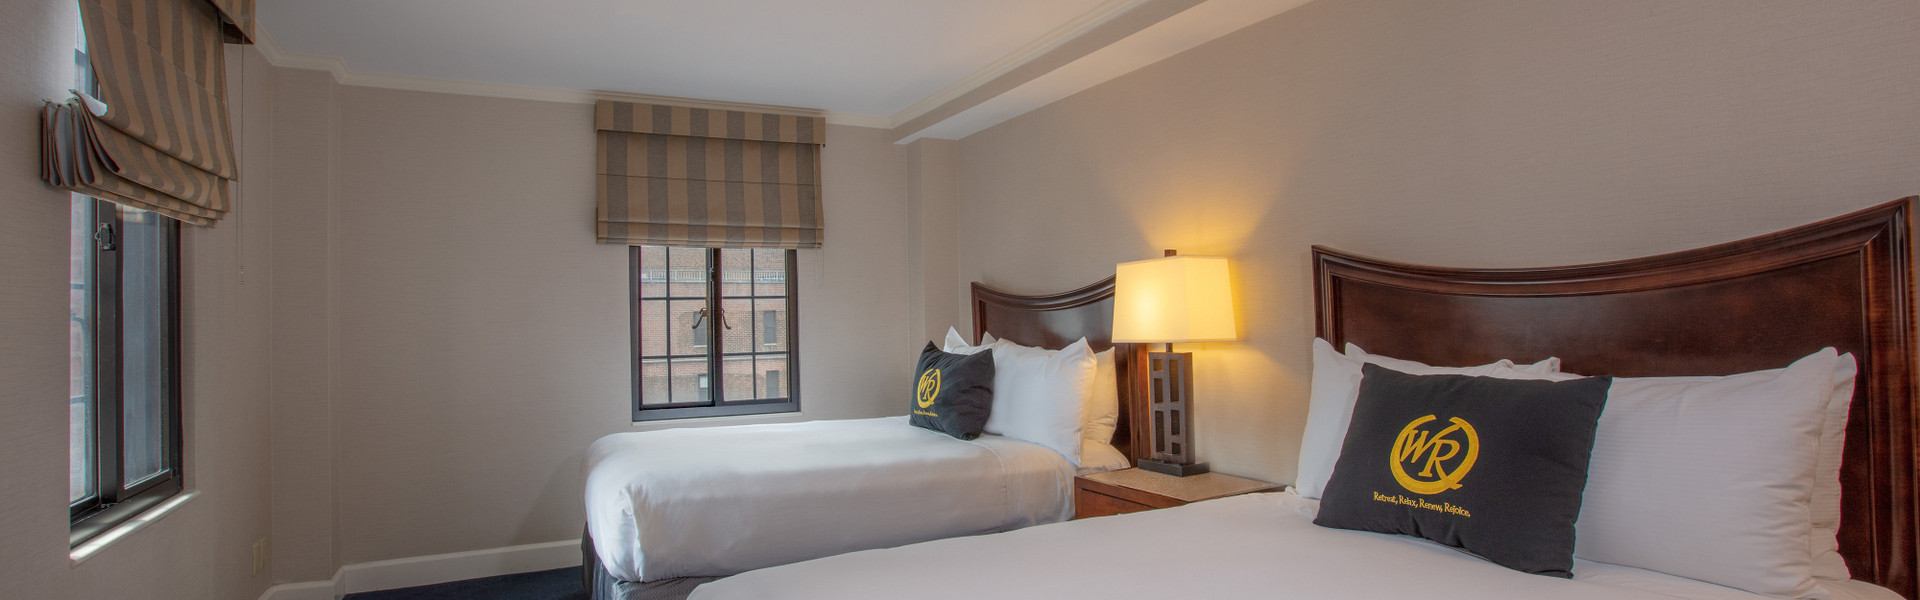 Two Beds Hotel Rooms in NYC | Westgate New York Grand Central Hotel | New York City Hotel Rooms for Families